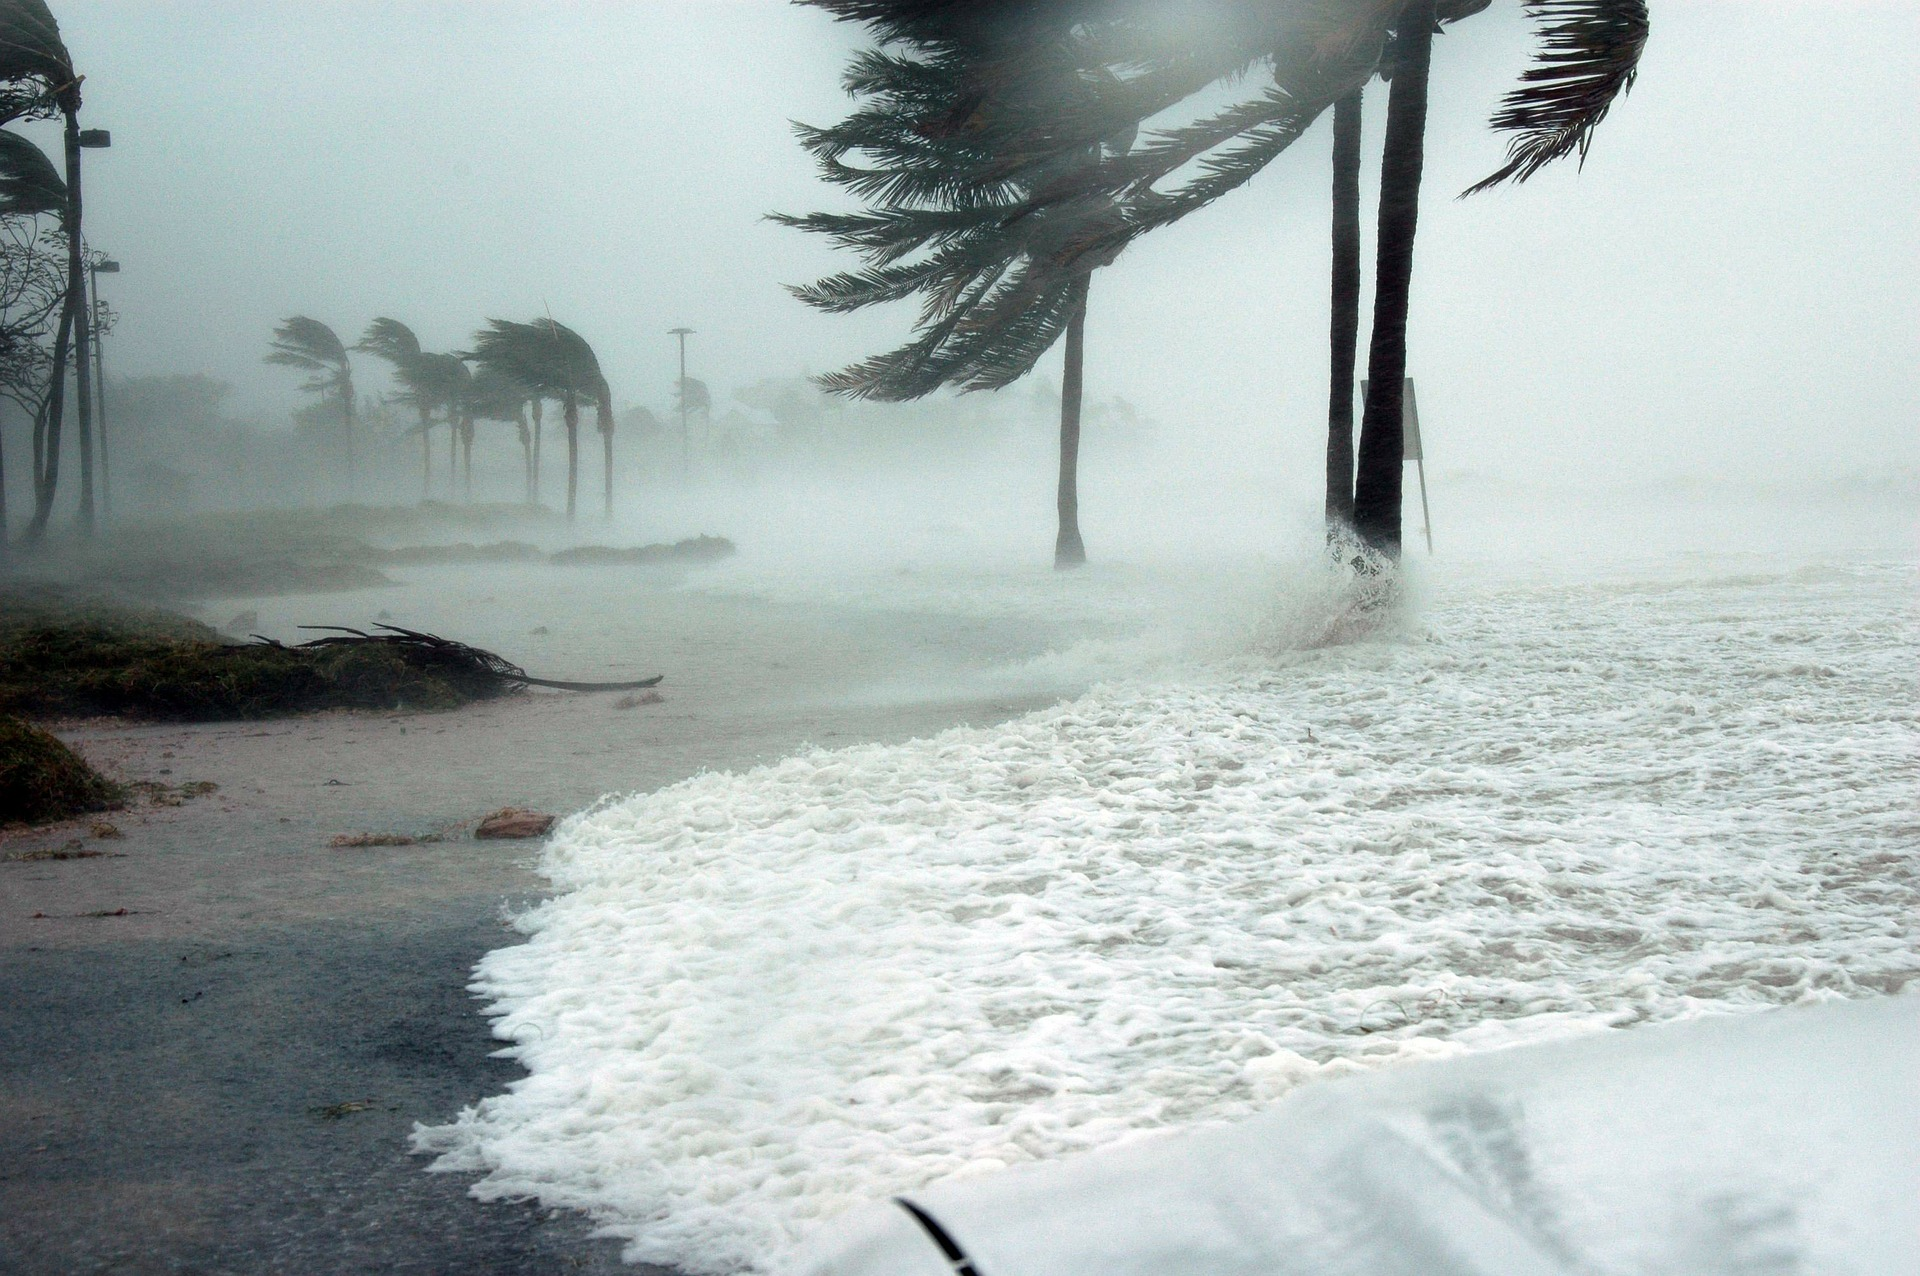 Hurricane Season in the Dominican Republic